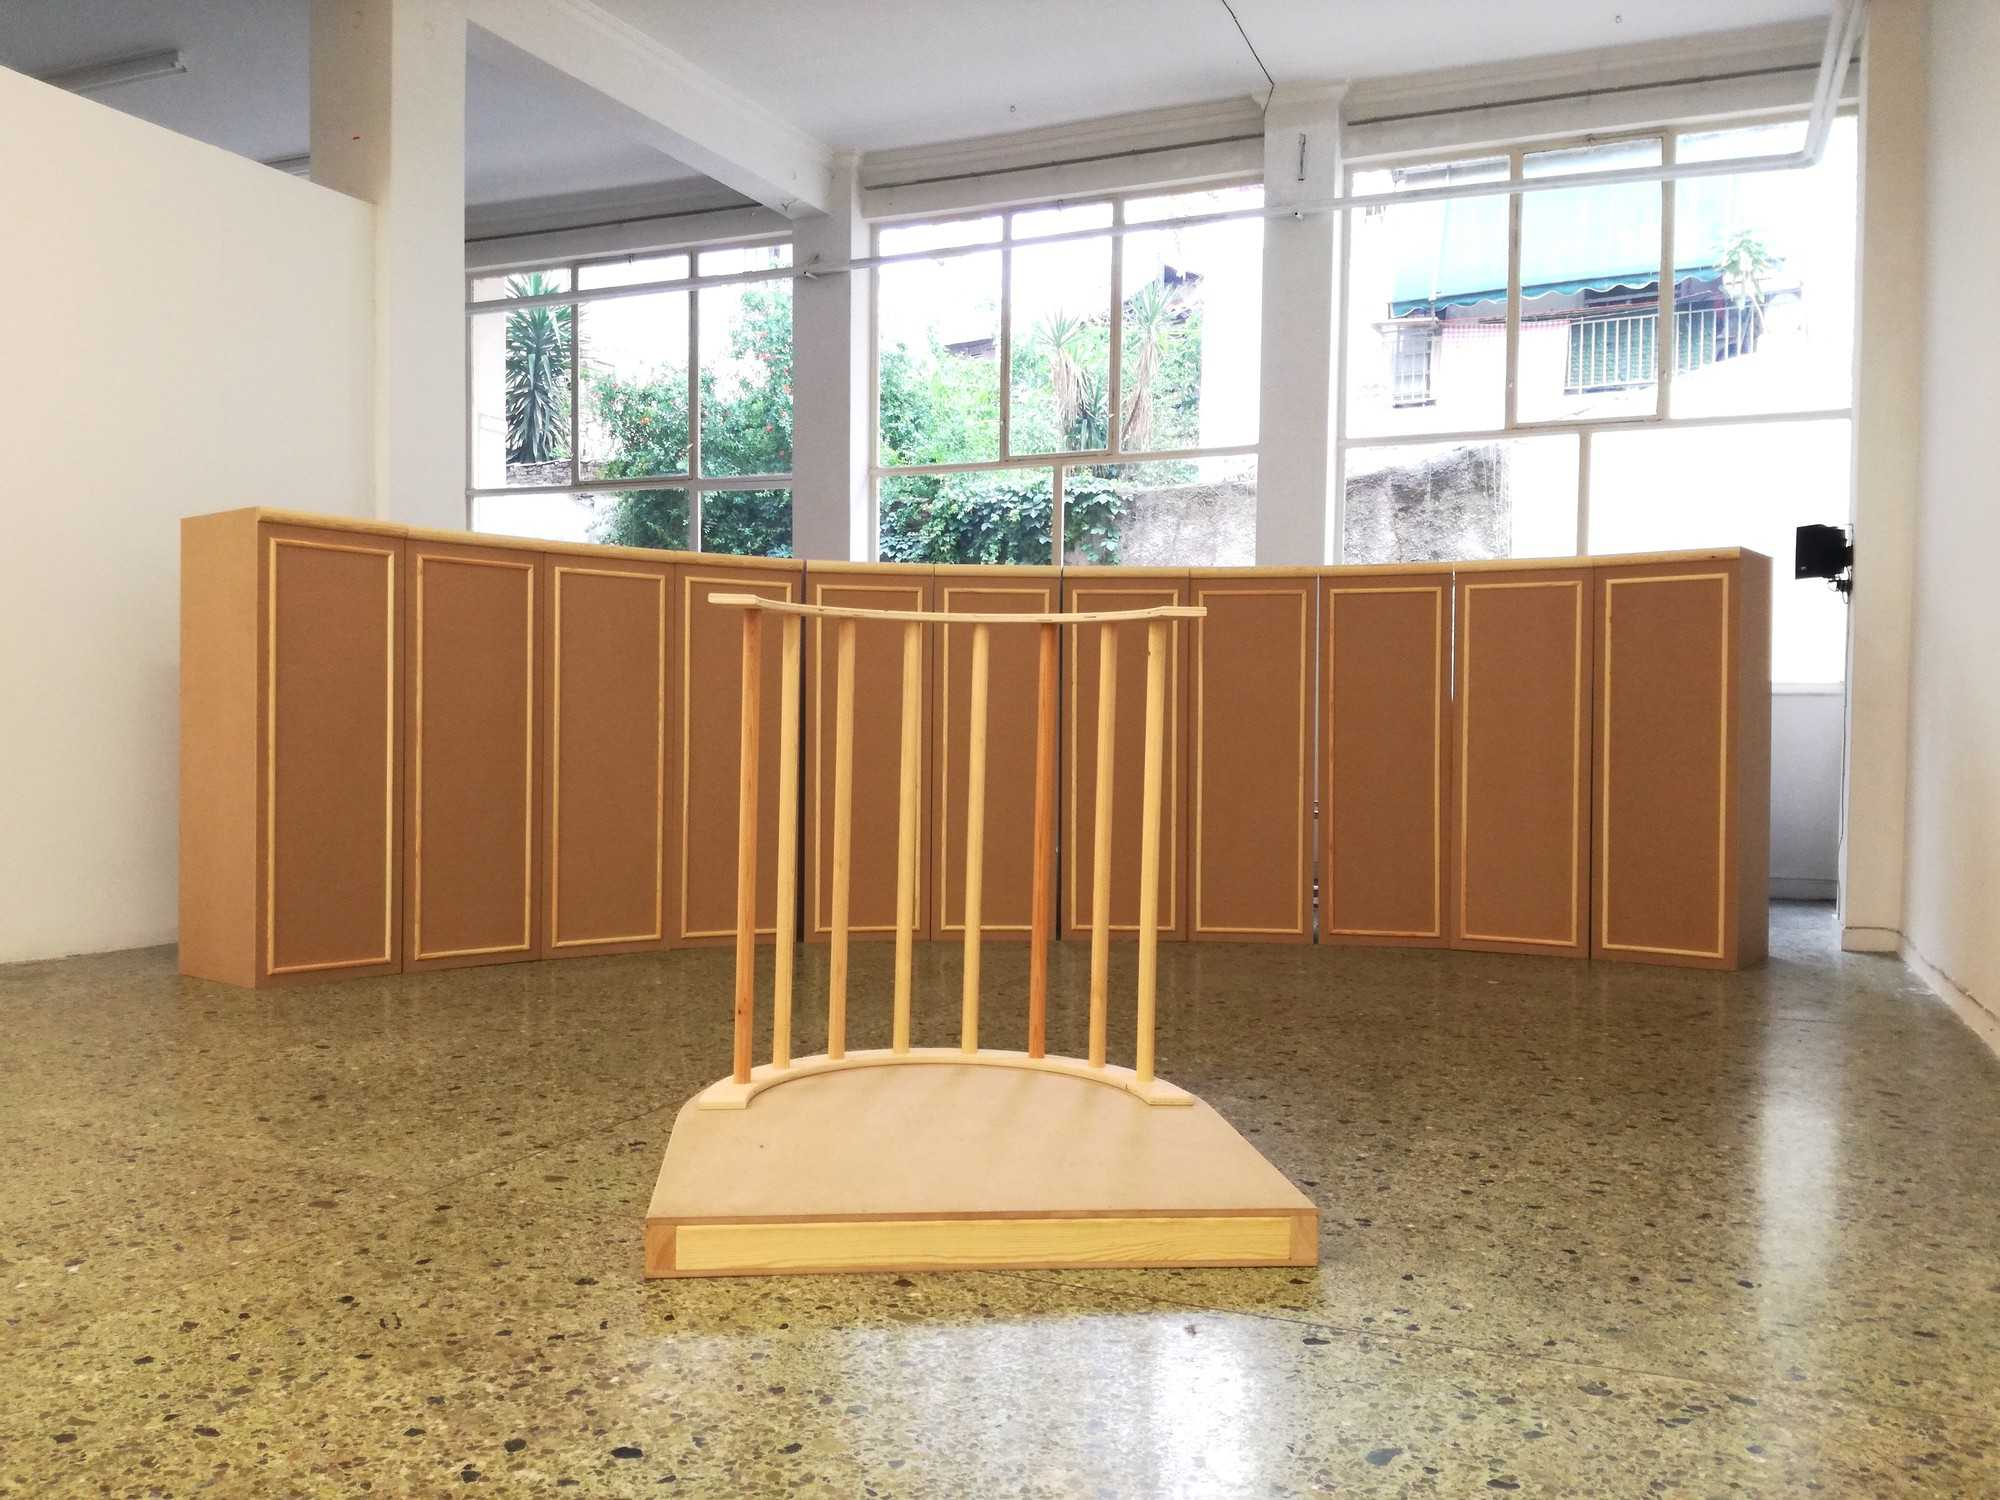 "Installation view from Yota Ioannidou's ""A case of perpetual no"", May 2018, State of Concept Athens. Copyright the artist and State of Concept Athens."